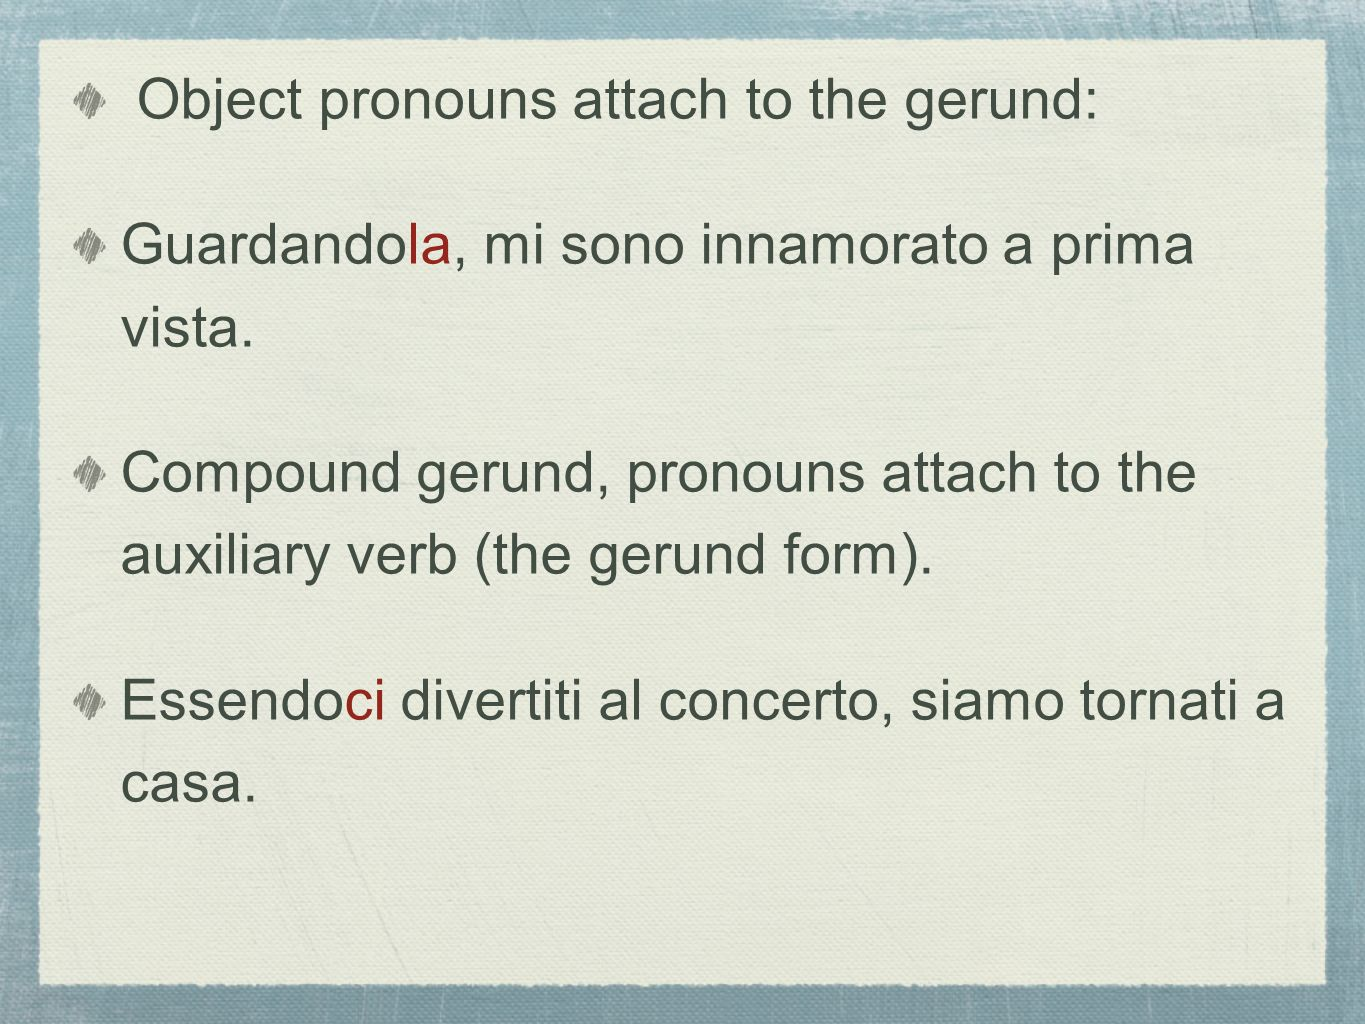 Object pronouns attach to the gerund: